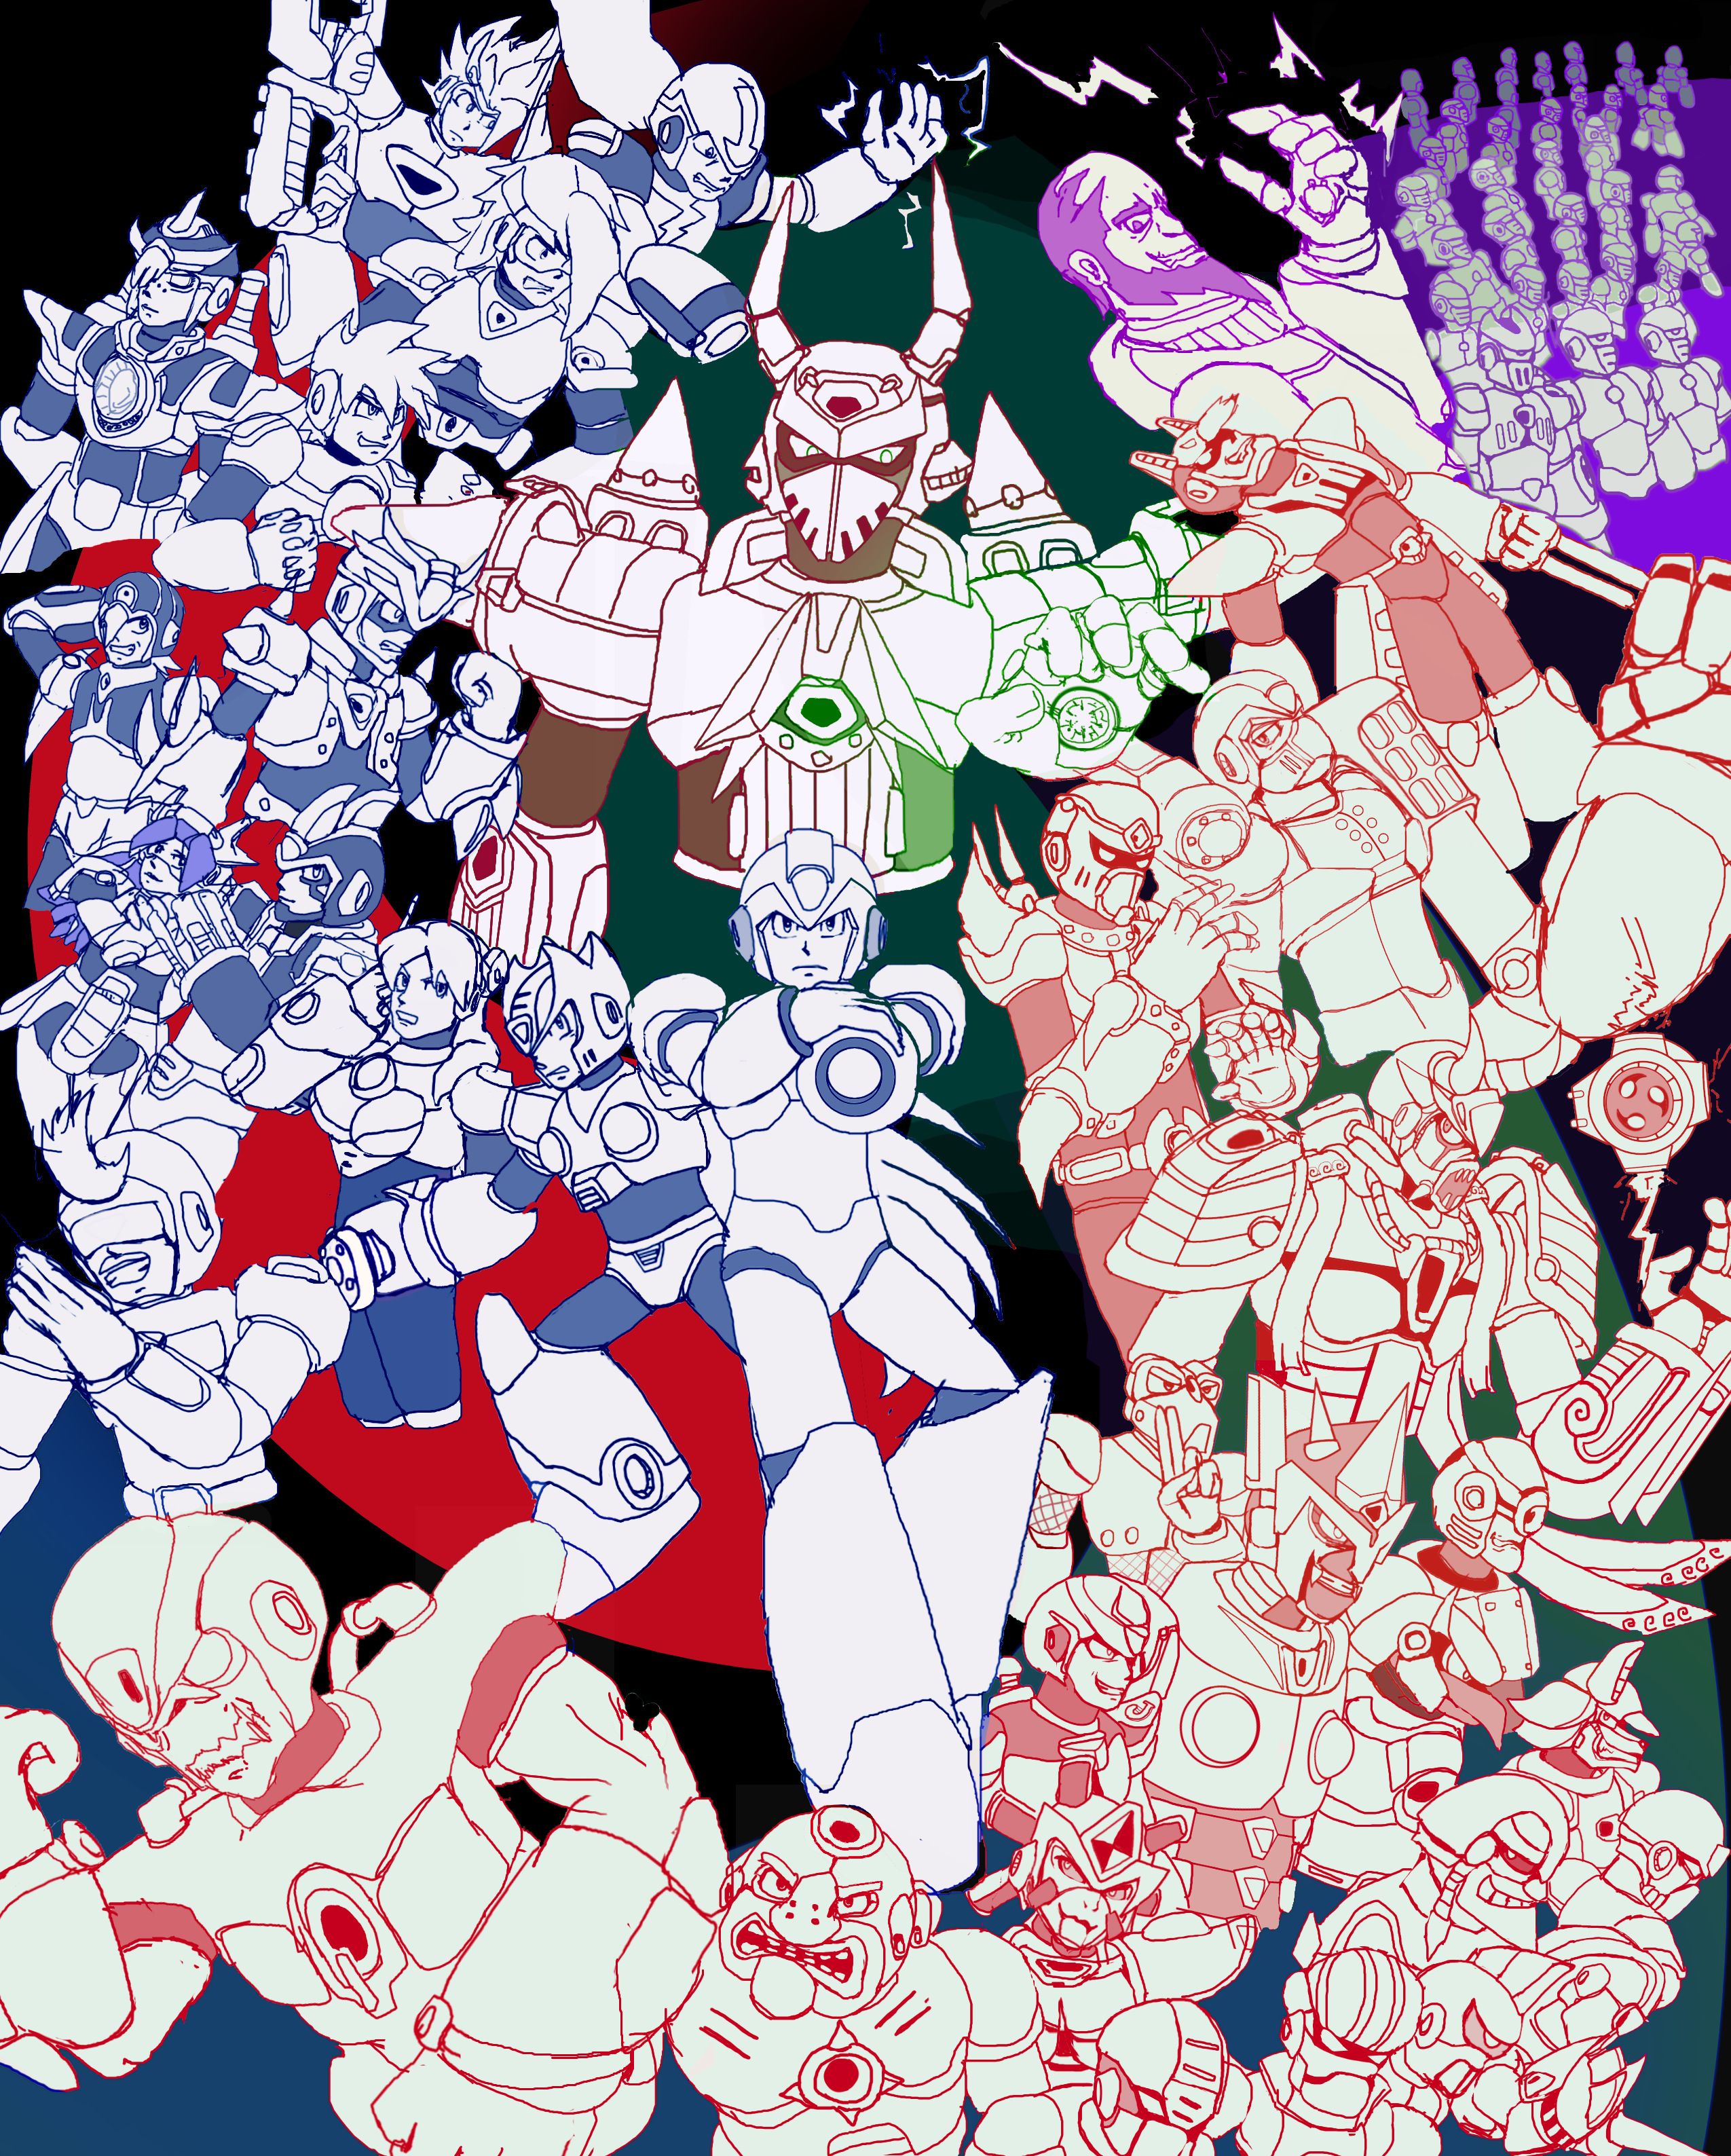 [Image: mega_man_x__unit_49_season_2_cover__mous...ca9f63.png]